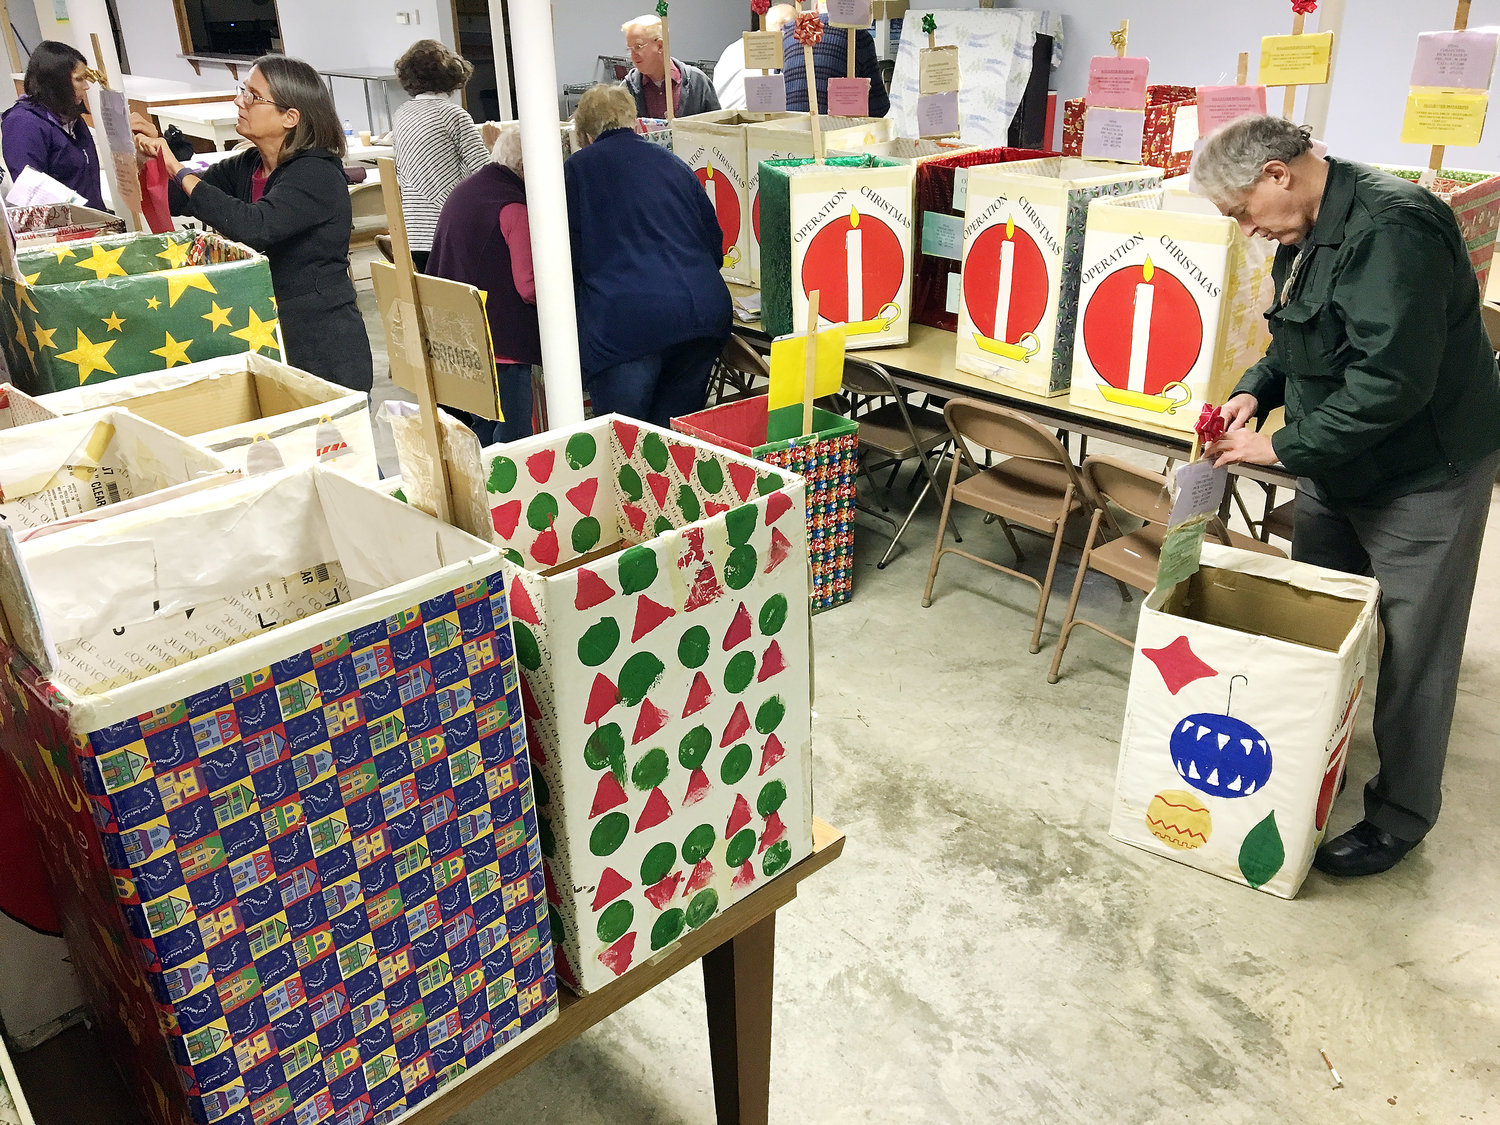 ST. PAUL UCC Pastor Stephanie DeLong and Bob Duda were among Operation Christmas volunteers repairing food collection boxes Monday.